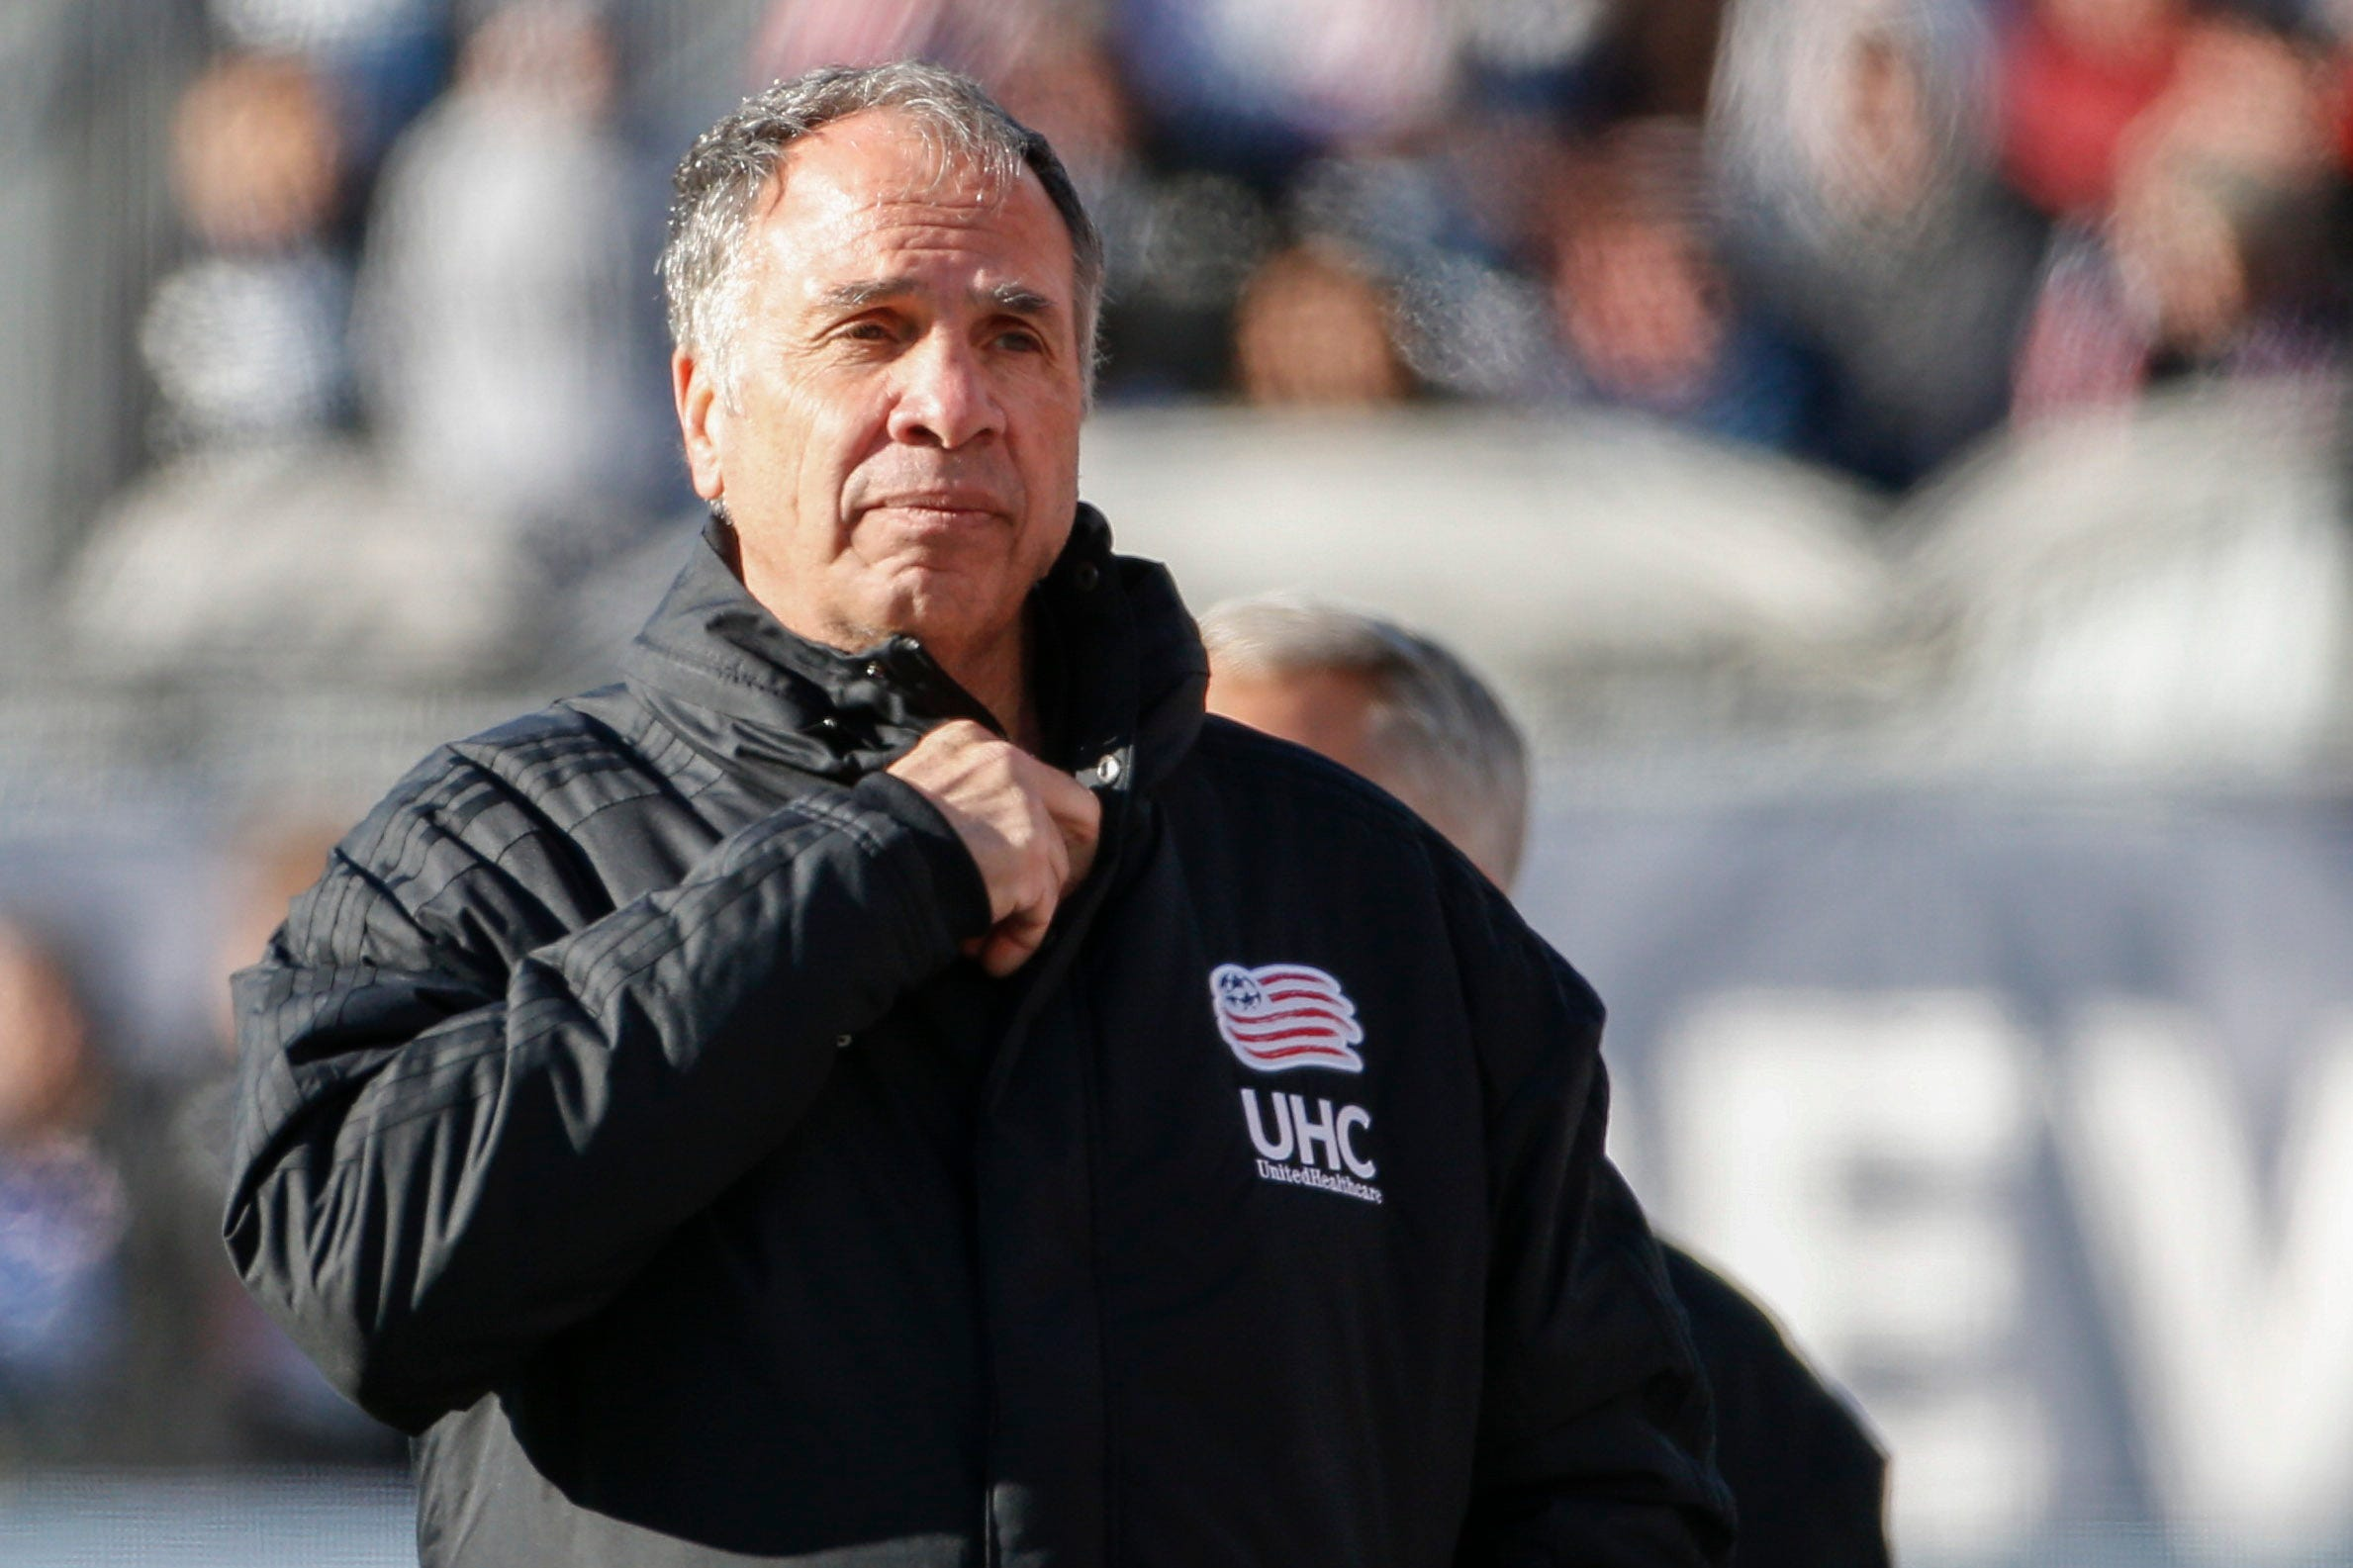 'It's inappropriate': Former U.S. soccer coach Bruce Arena critical of playing national anthem before sporting events